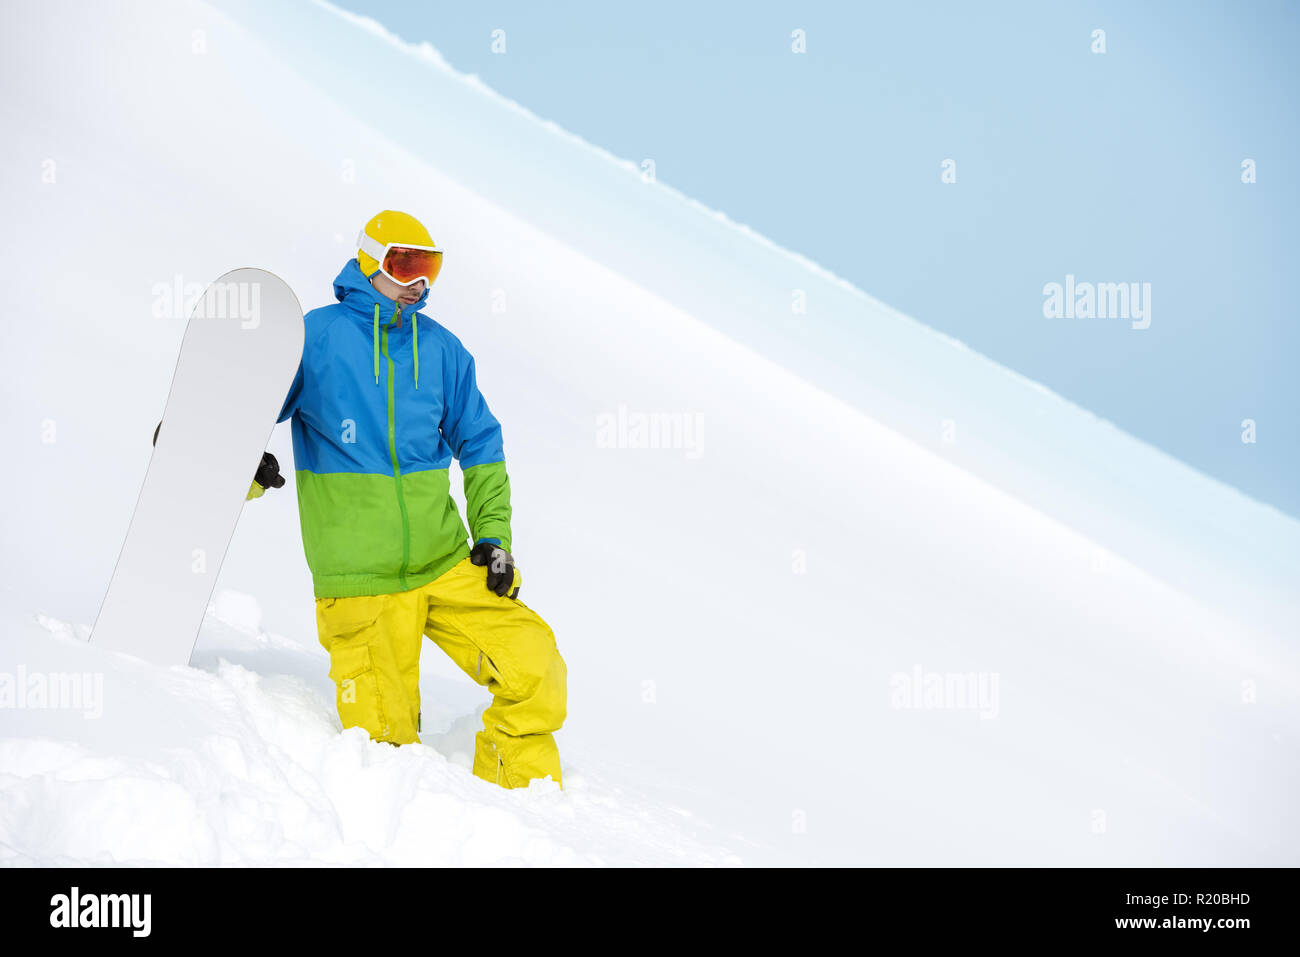 Snowboarder stands on backcountry slope and holds snowboard. Ski concept - Stock Image